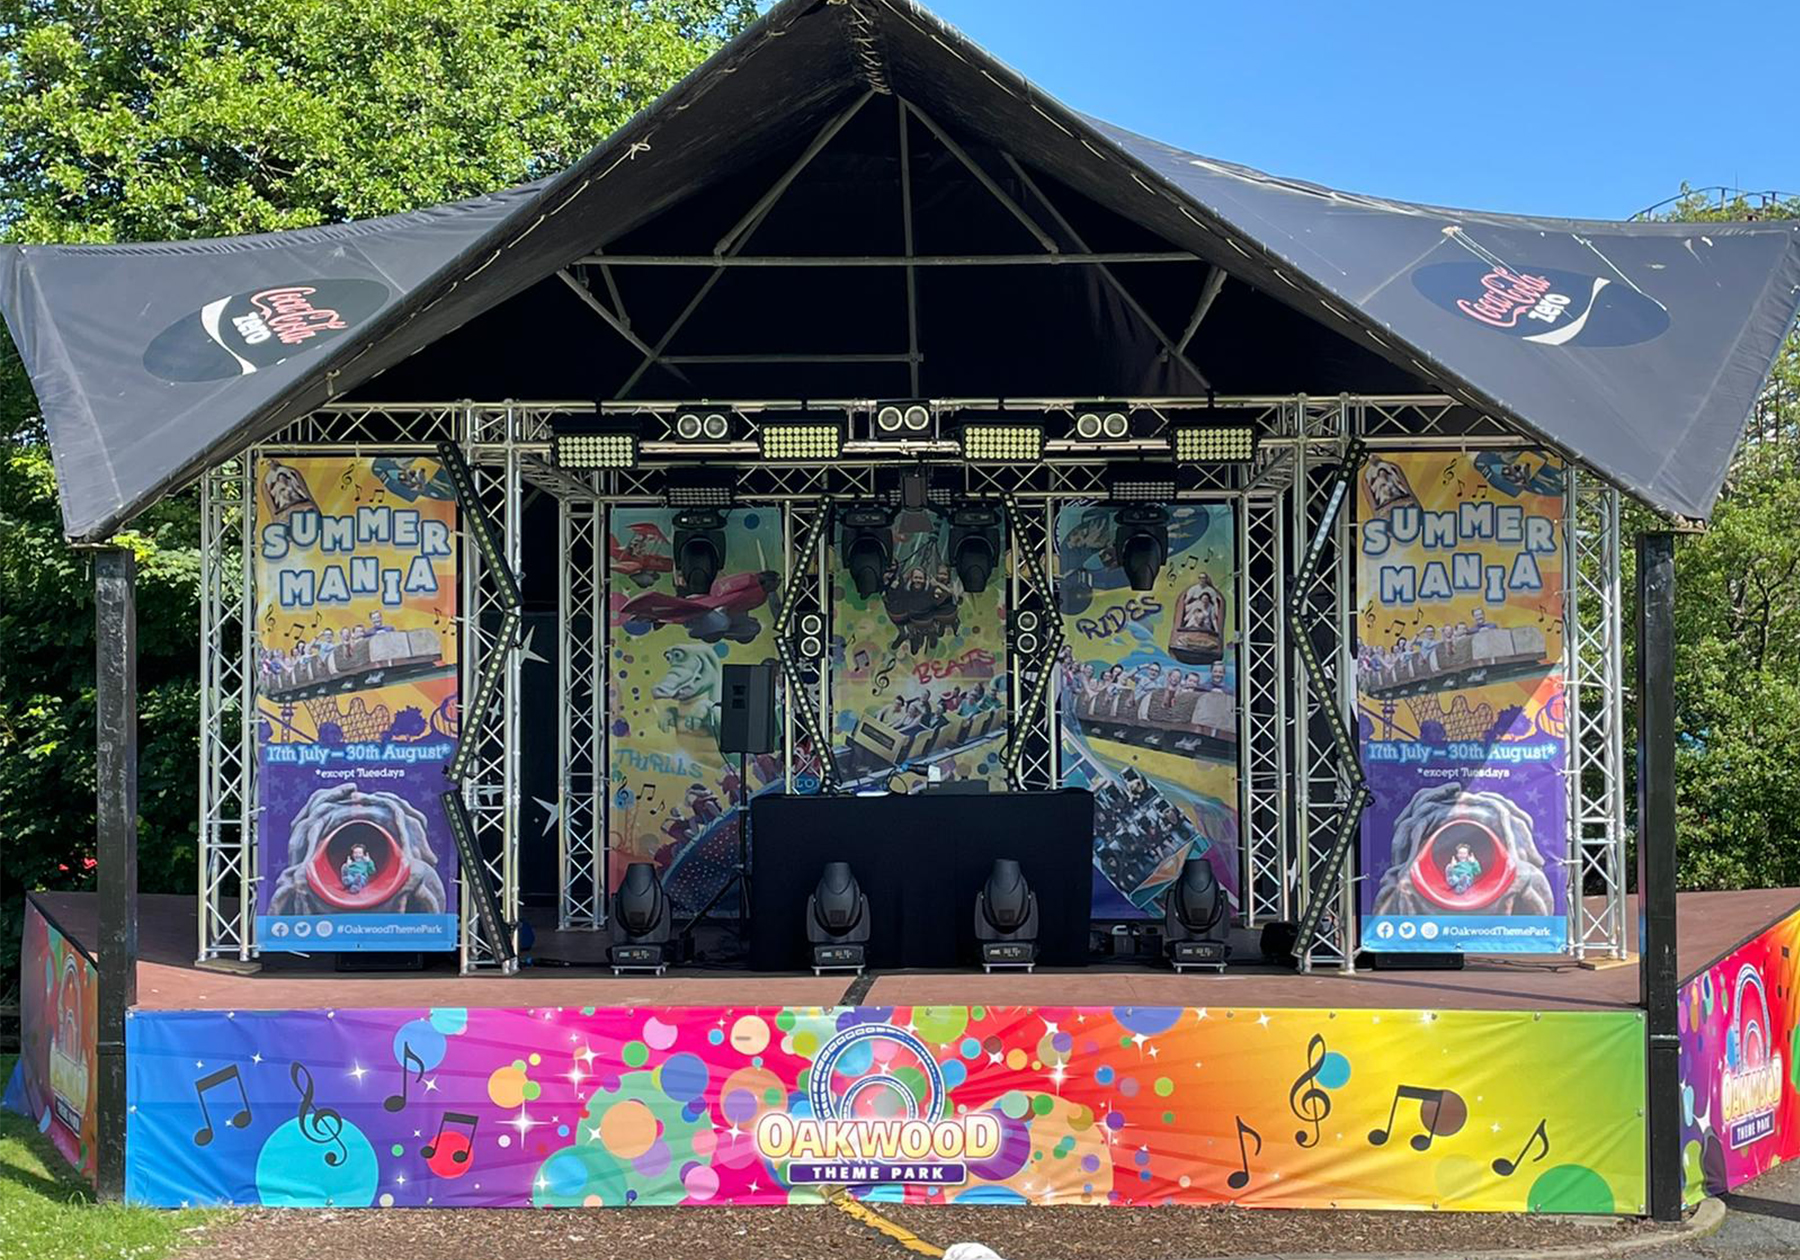 Hire AV equipment, pa systems, sound & lighting for events in South West Wales, Cardiff, Swansea, Newport, Carmarthenshire & Pembrokeshire